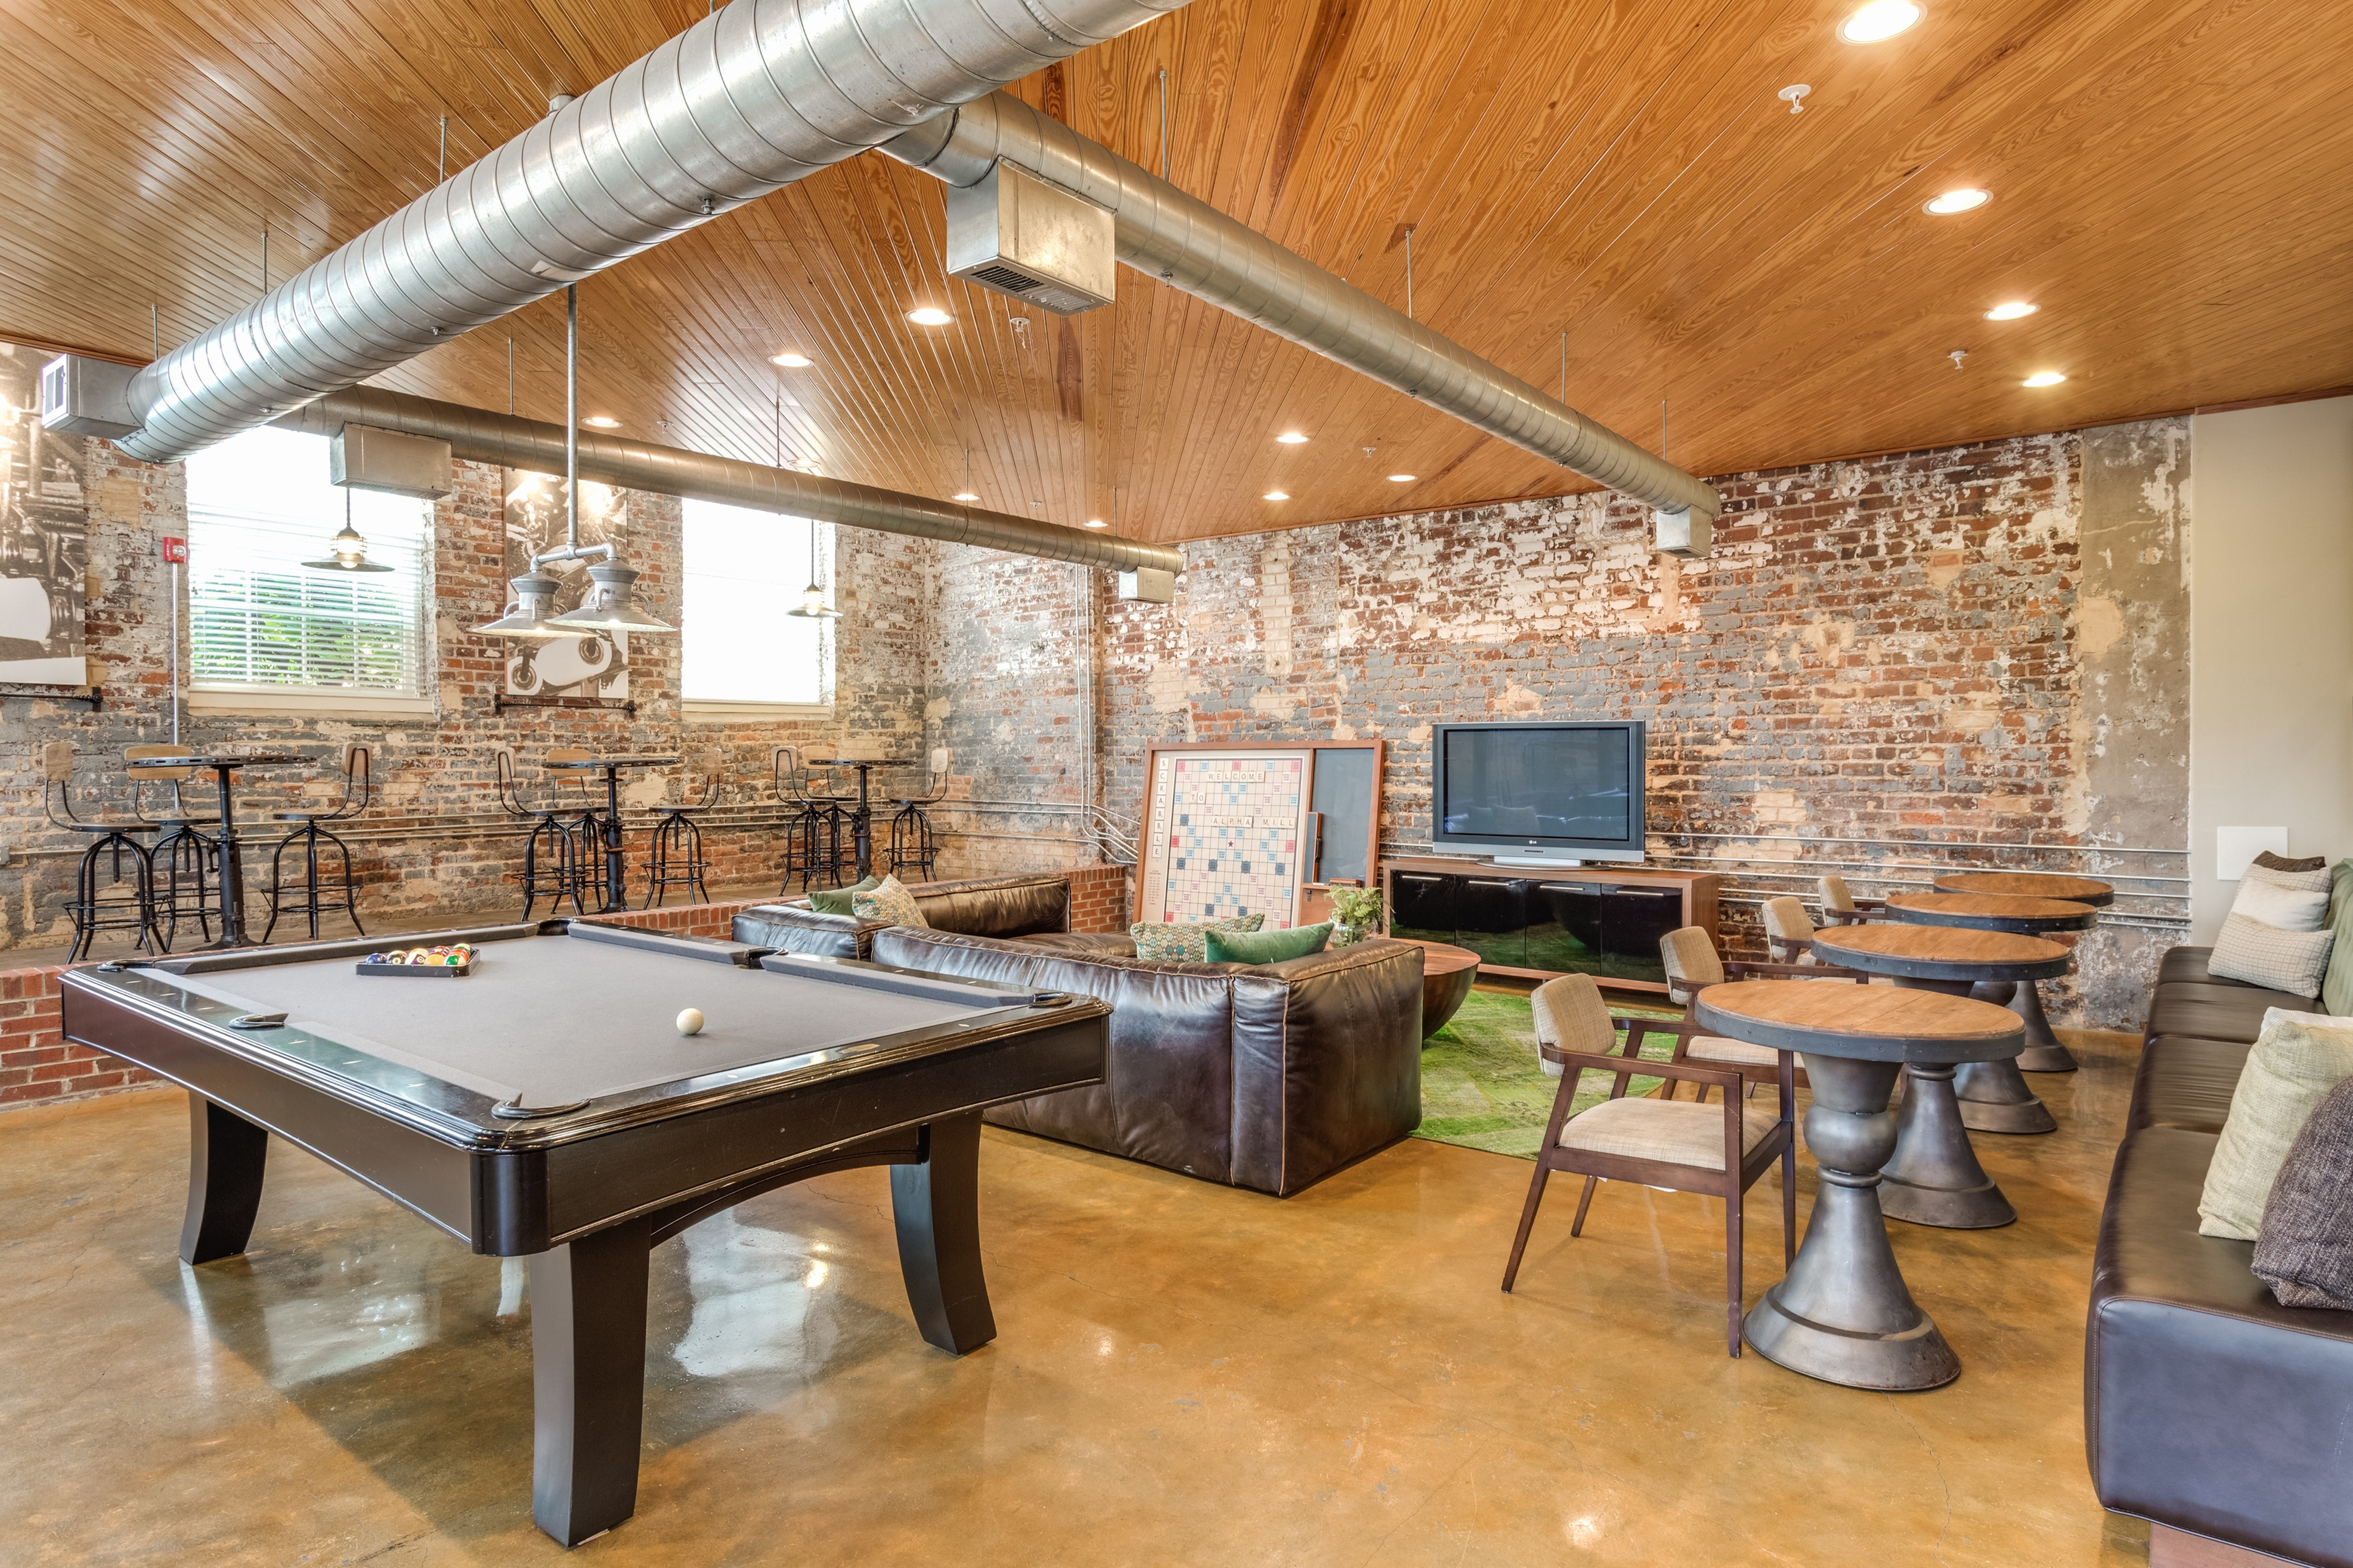 View of Resident Lounge, Showing Pool Table, Sitting Areas, TV, and Mill Architecture at Alpha Mill Apartments